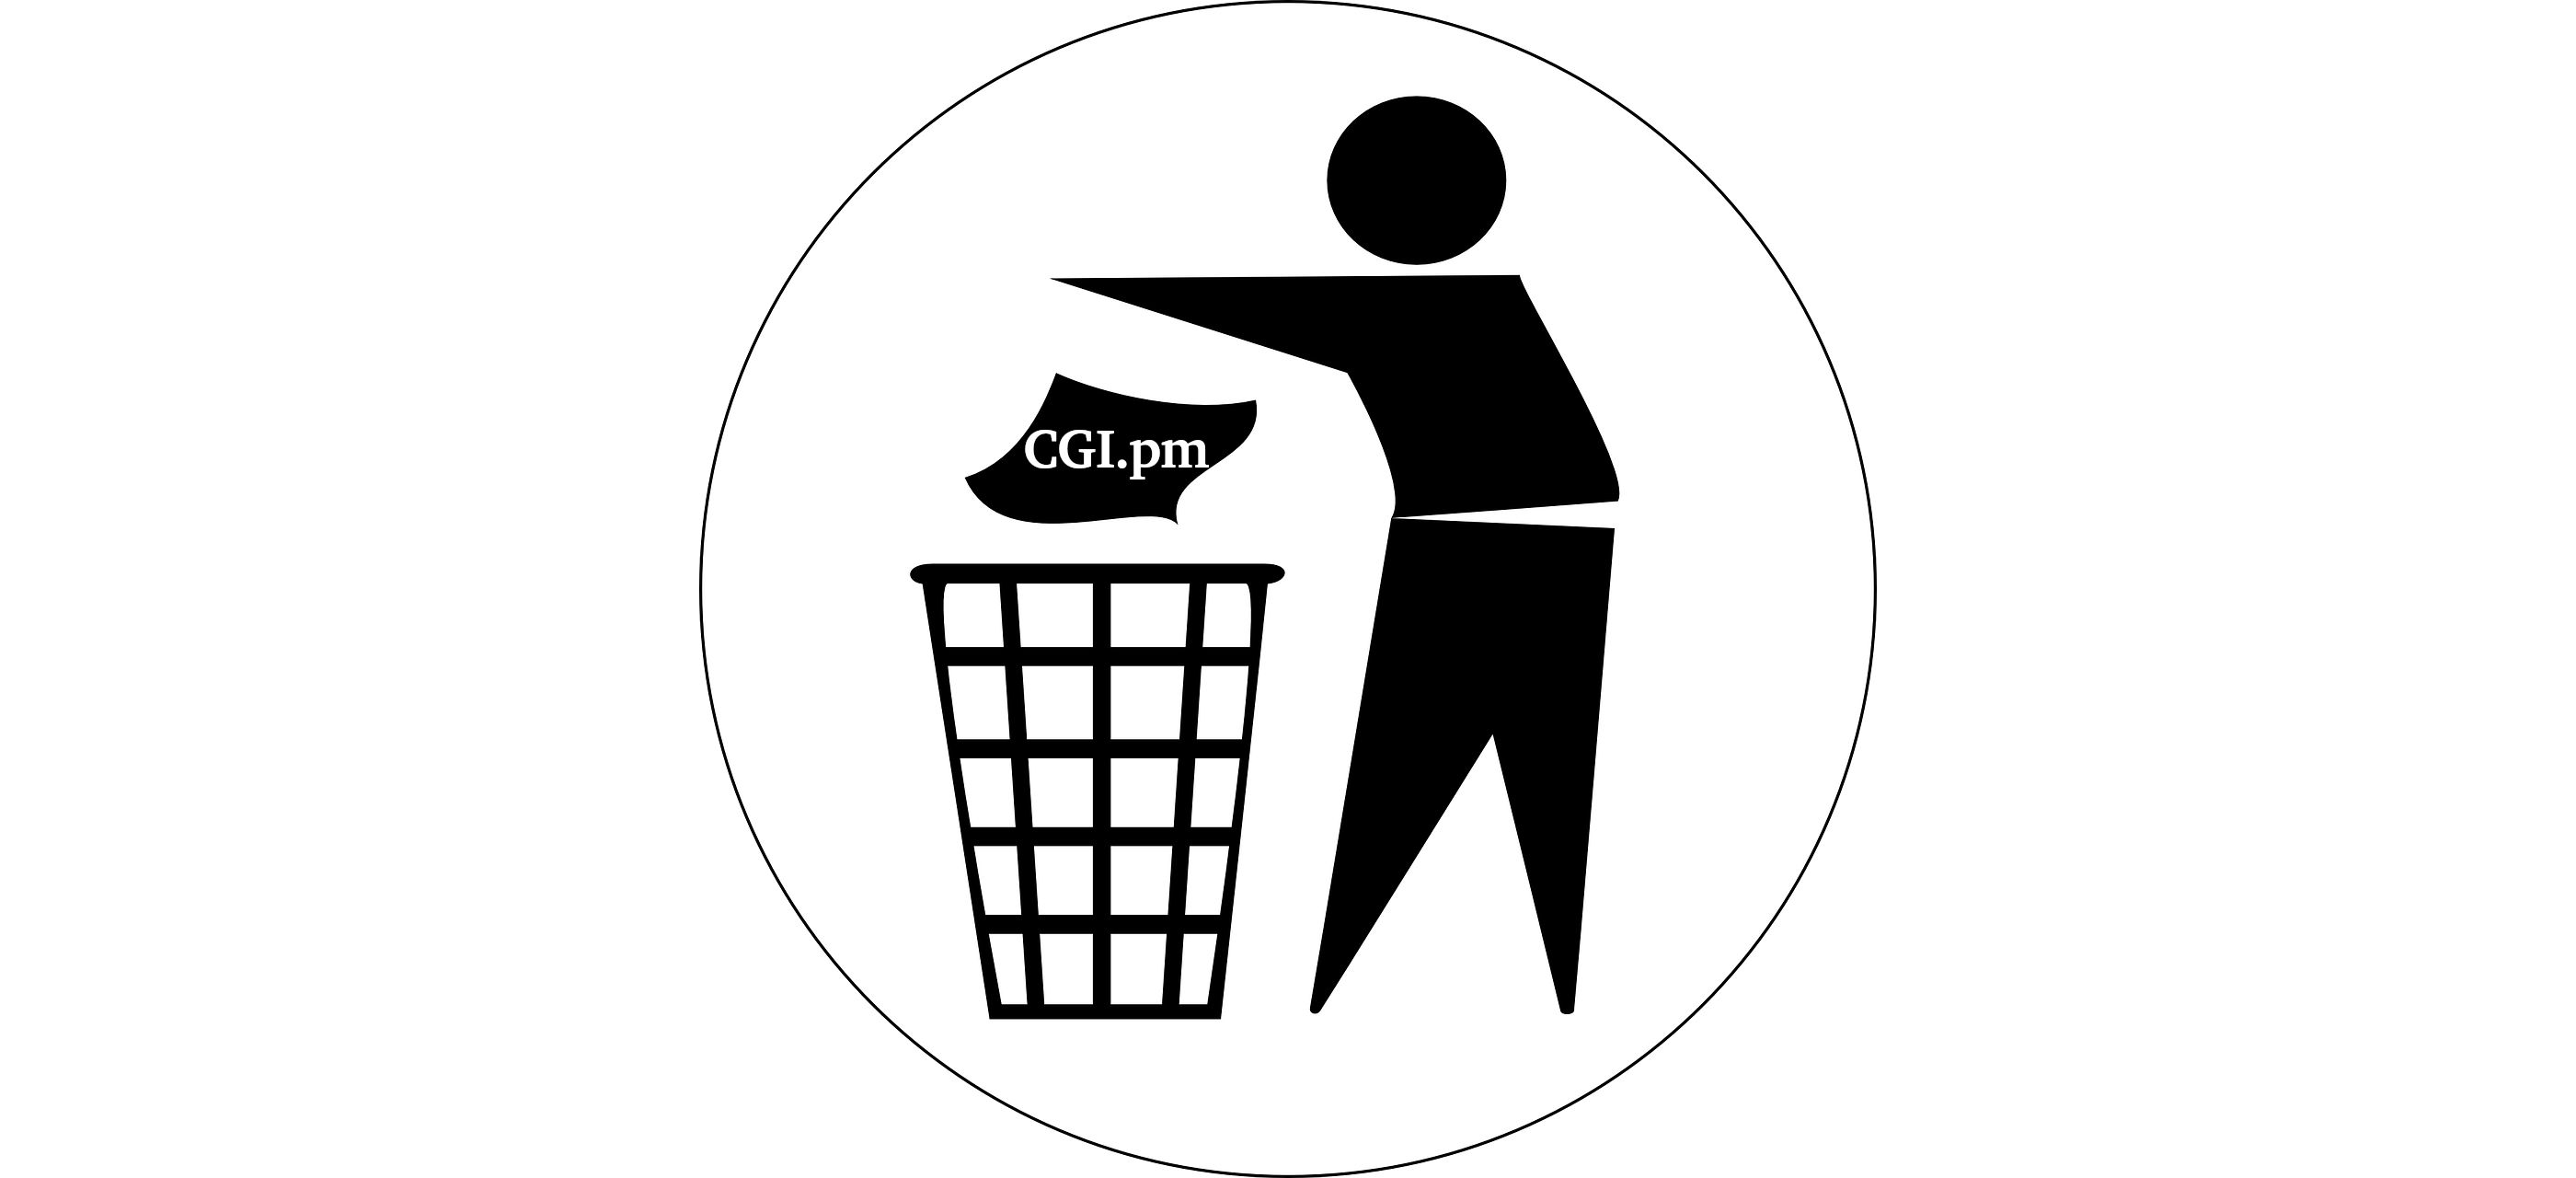 CGI.pm in the Bin